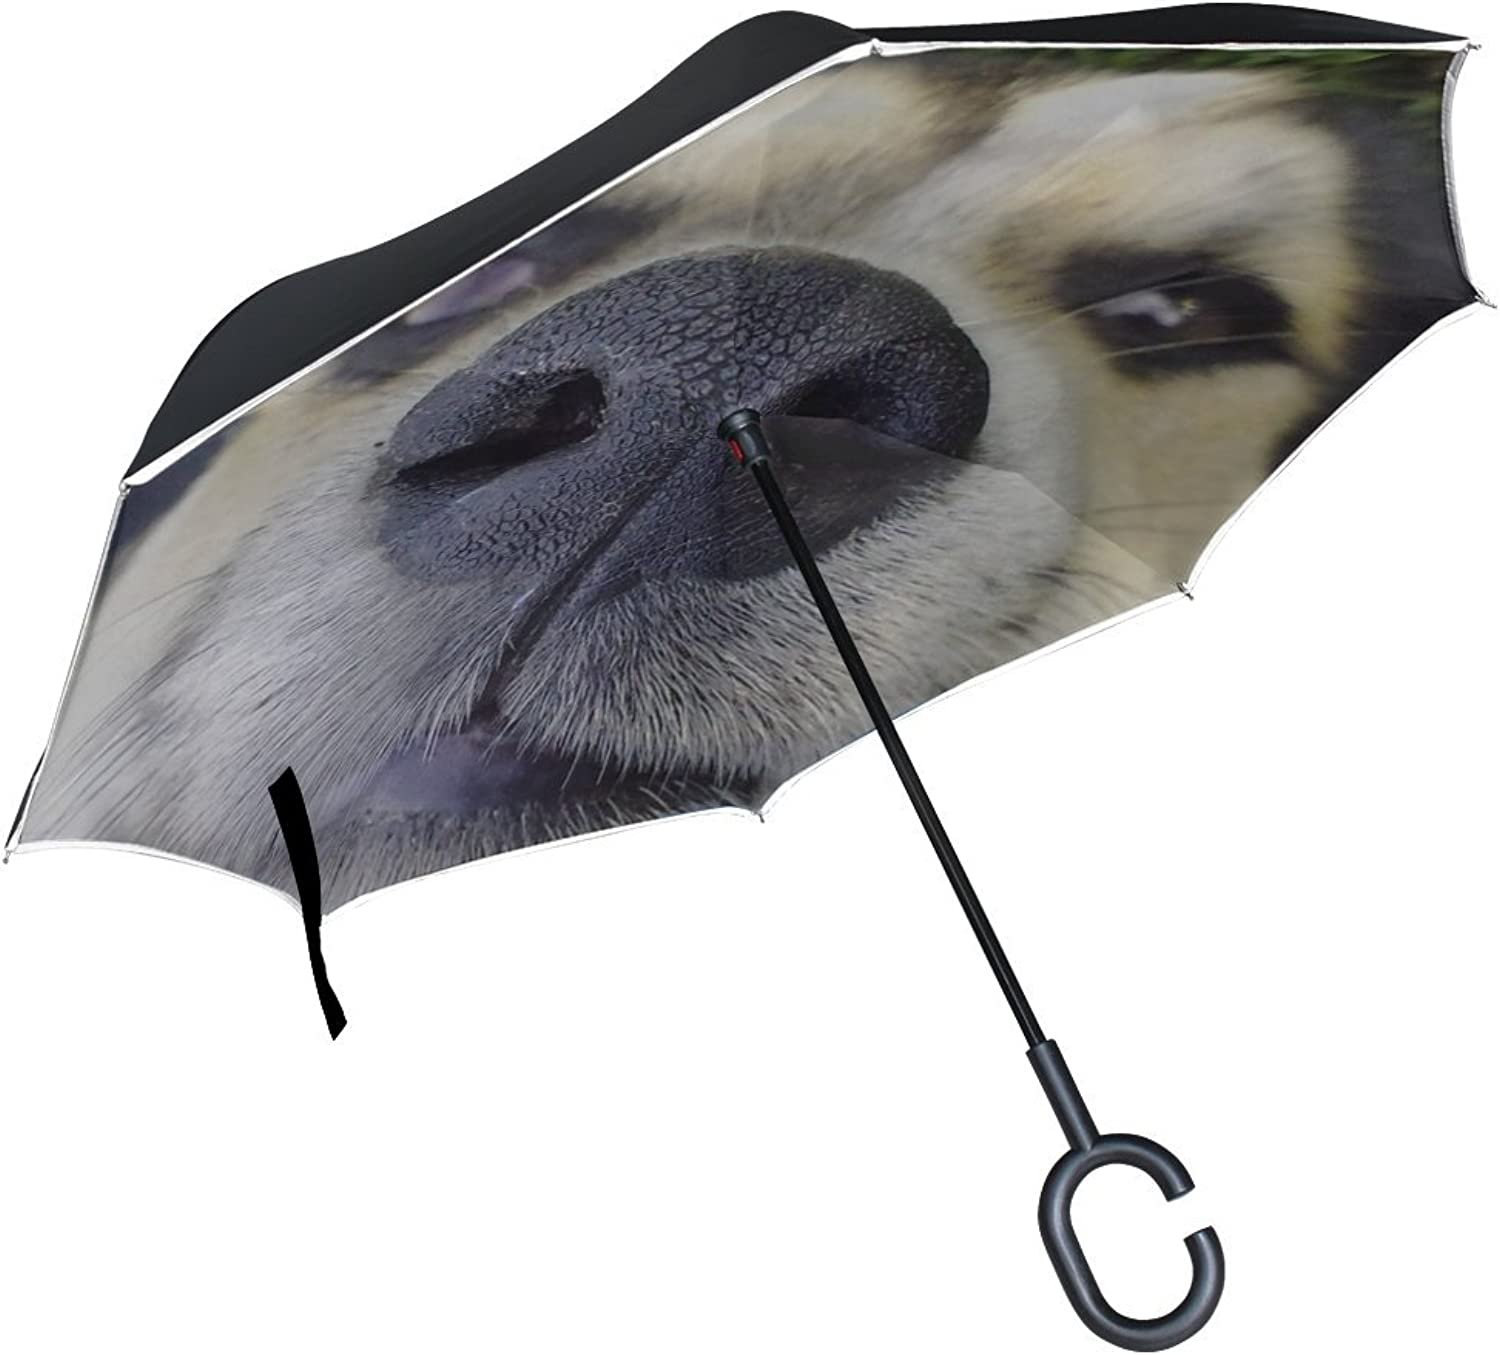 Rh Studio Ingreened Umbrella Dog Nose Face Cute Large Double Layer Outdoor Rain Sun Car Reversible Umbrella